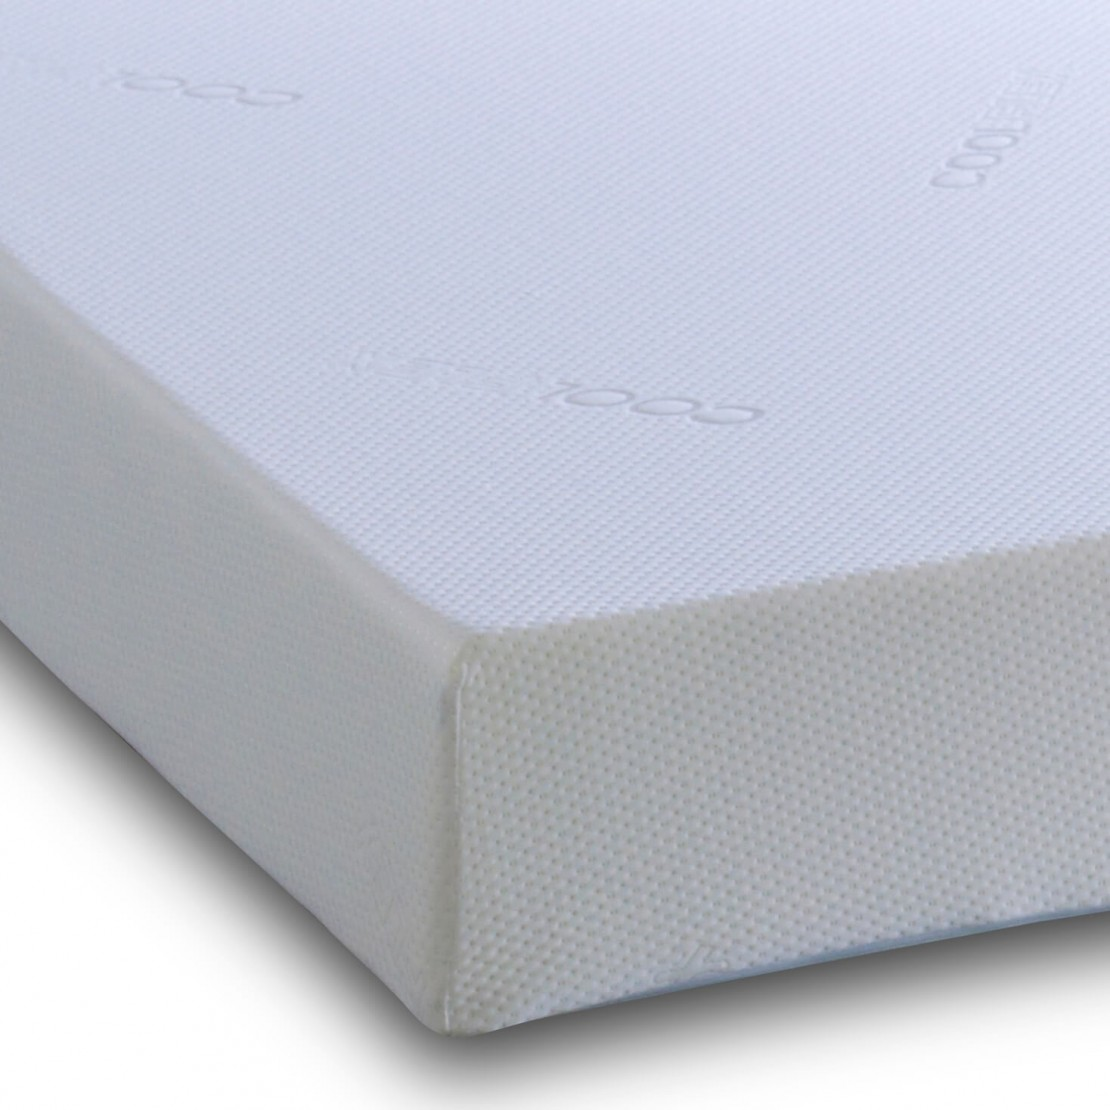 /_images/product-photos/visco-therapy-memory-foam-8000-regular-mattress-a.jpg